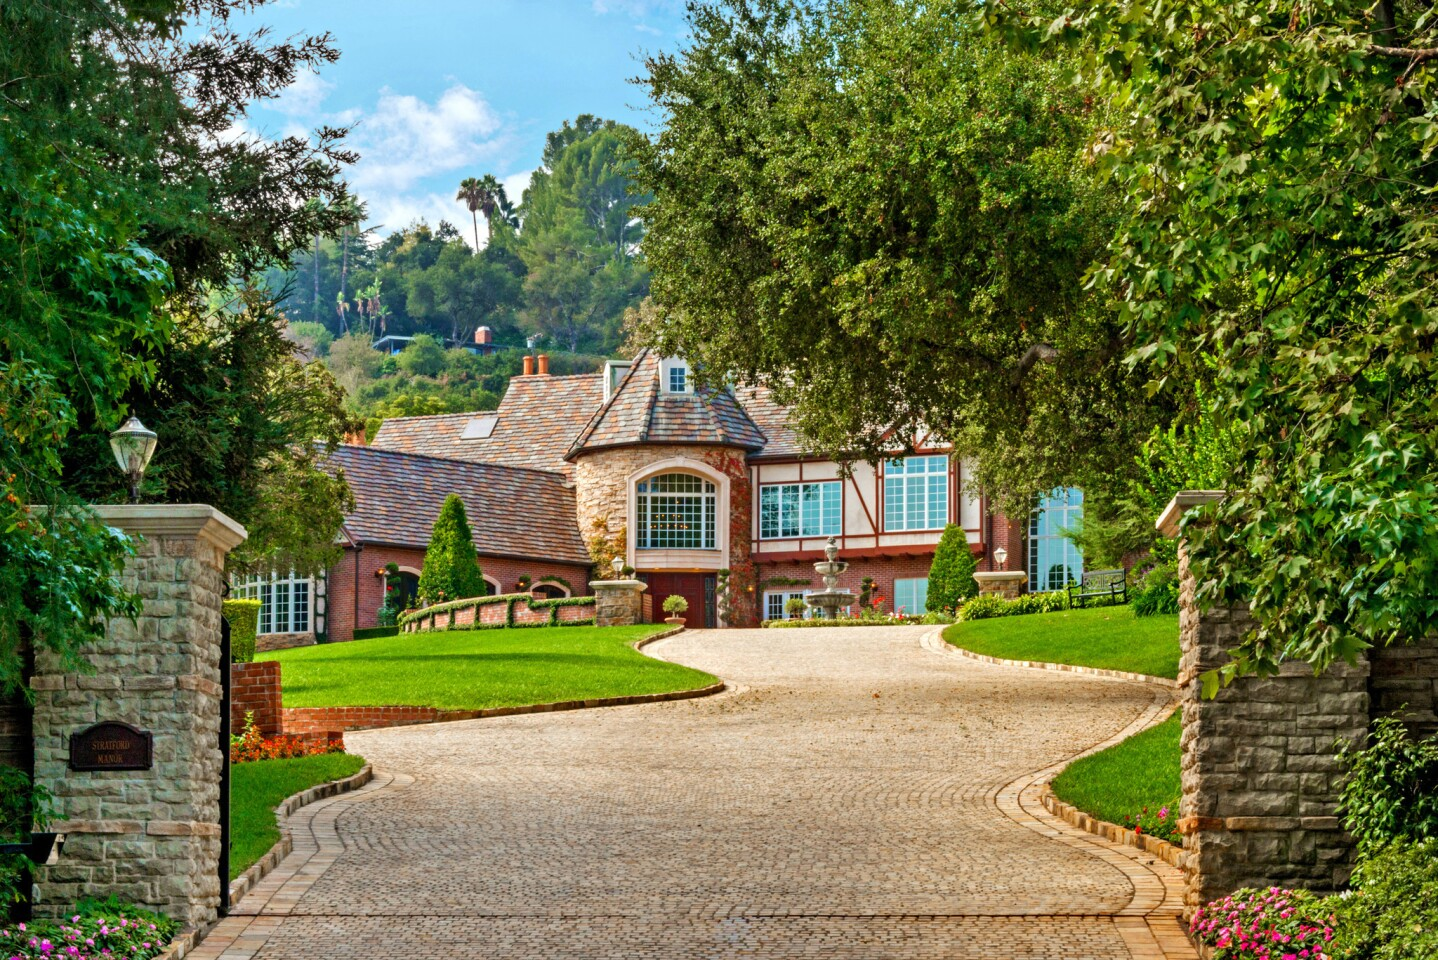 Stone pillars frame the serpentine driveway, which is made of 14,000 square feet of hand-cut Austrian cobblestone.